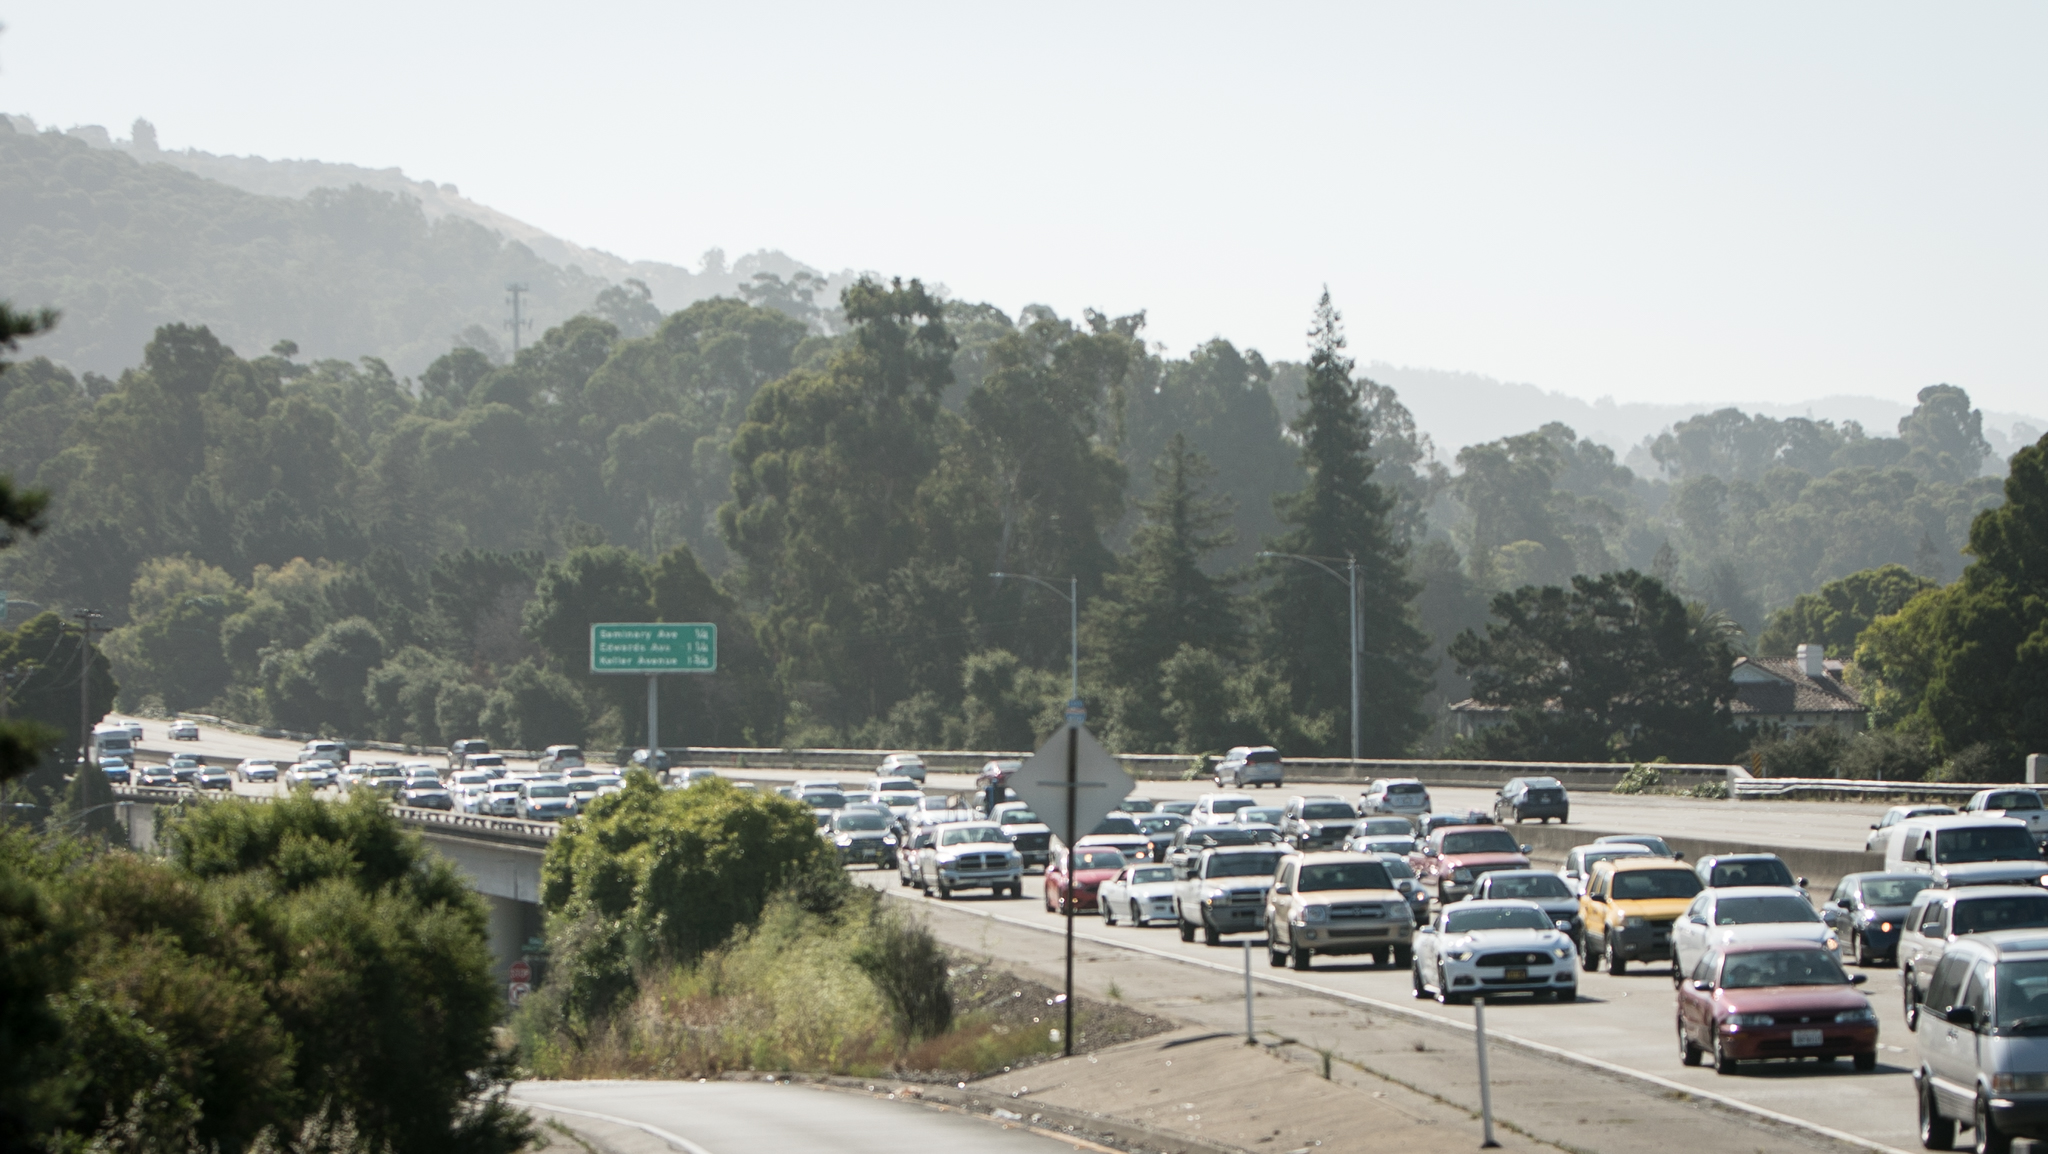 Macarthur_On_Ramp_West_Bound-1.jpg